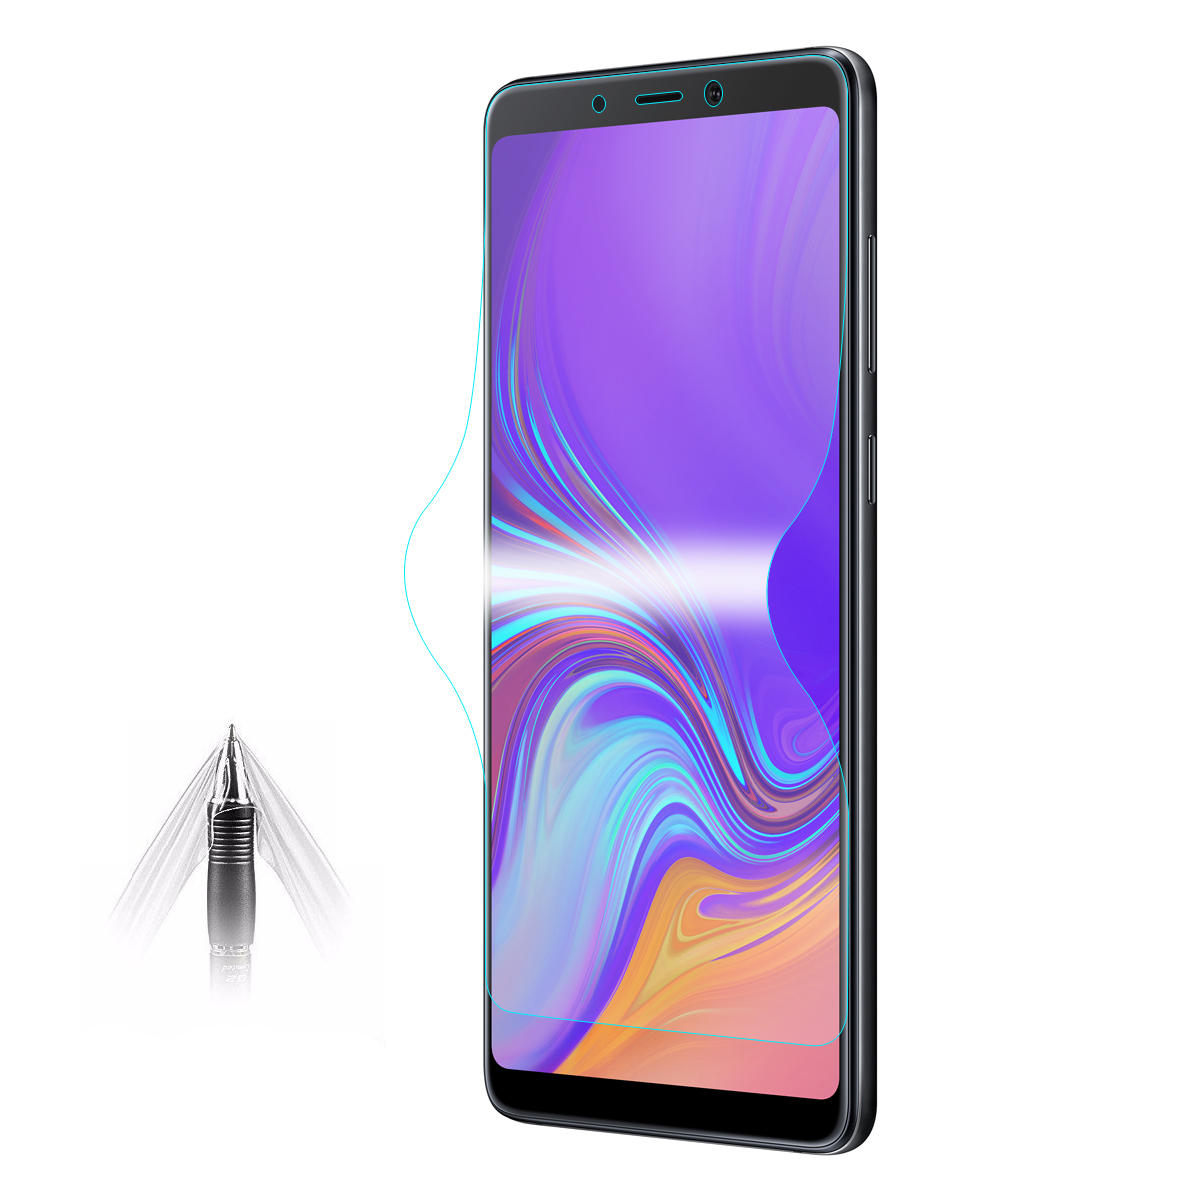 Enkay Hydrogel TPU Screen Protector For Samsung Galaxy A9 2018 3D Curved Edge Full Screen Cover Film